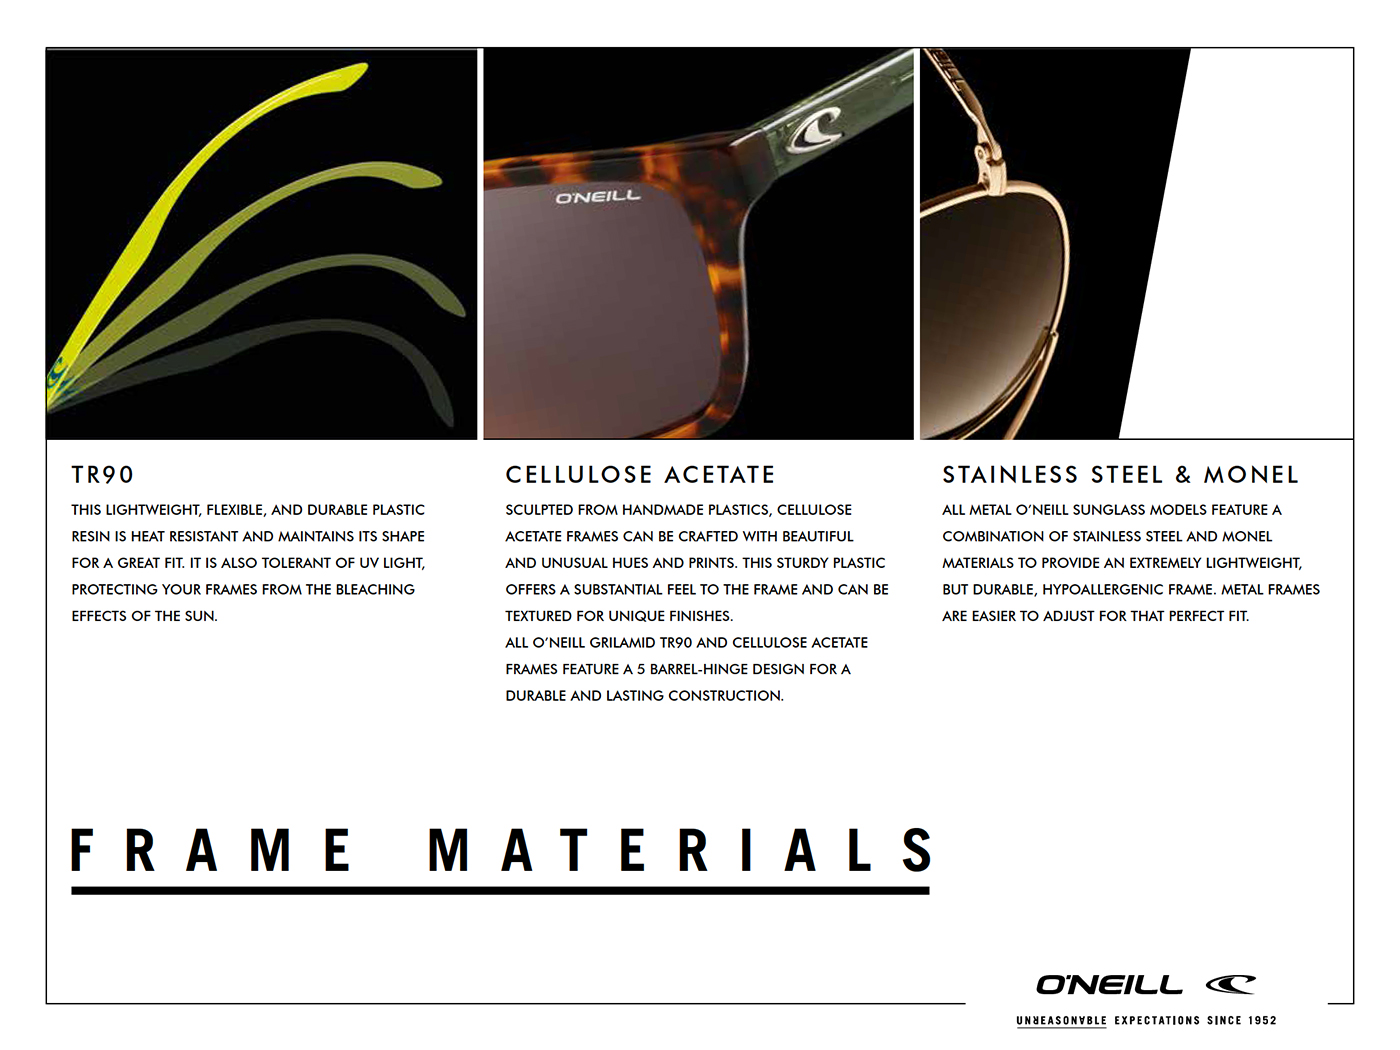 O'Neill Sunglasses FRAME MATERIALS